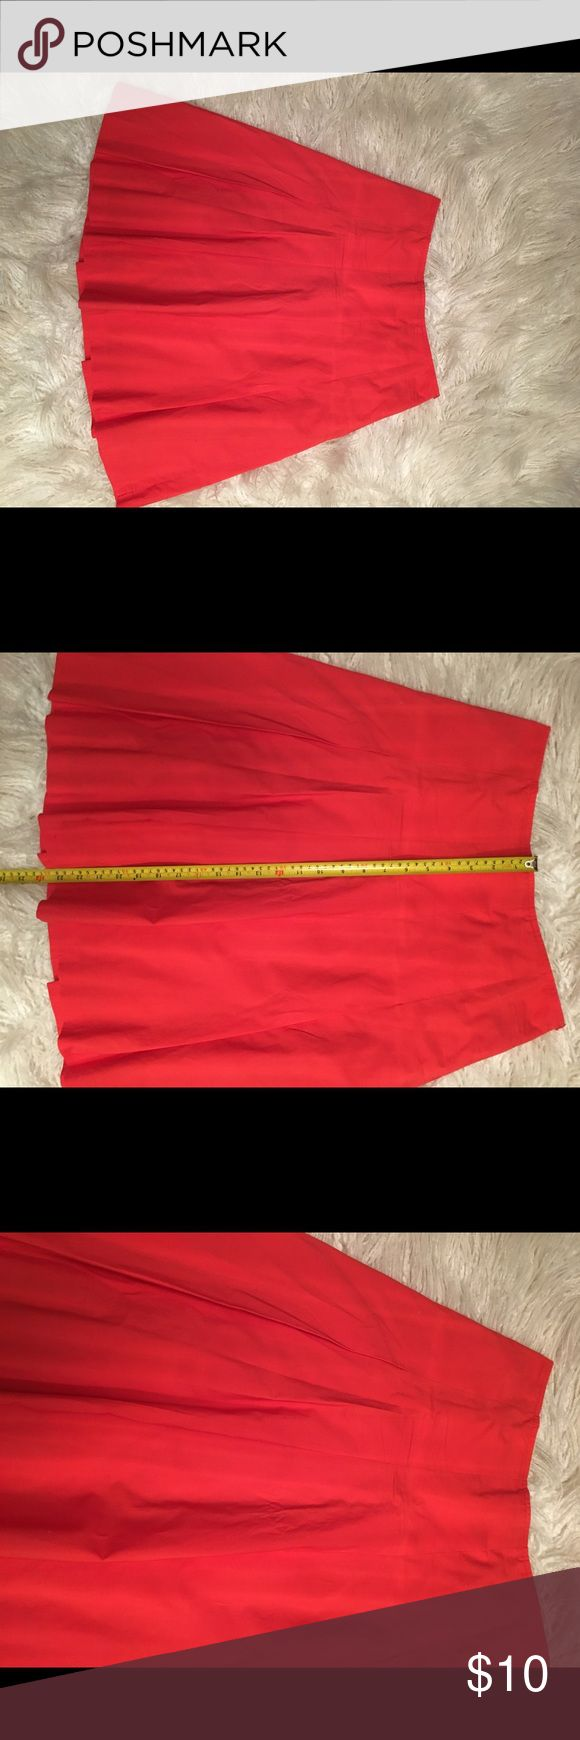 Express Orange Skirt Cute summer skirt, light weight material. Has pleats in front. Good condition, always taken to dry cleaners. Size 4. Top in picture is also available in my closet, cute outfit together, make a bundle. Express Skirts A-Line or Full